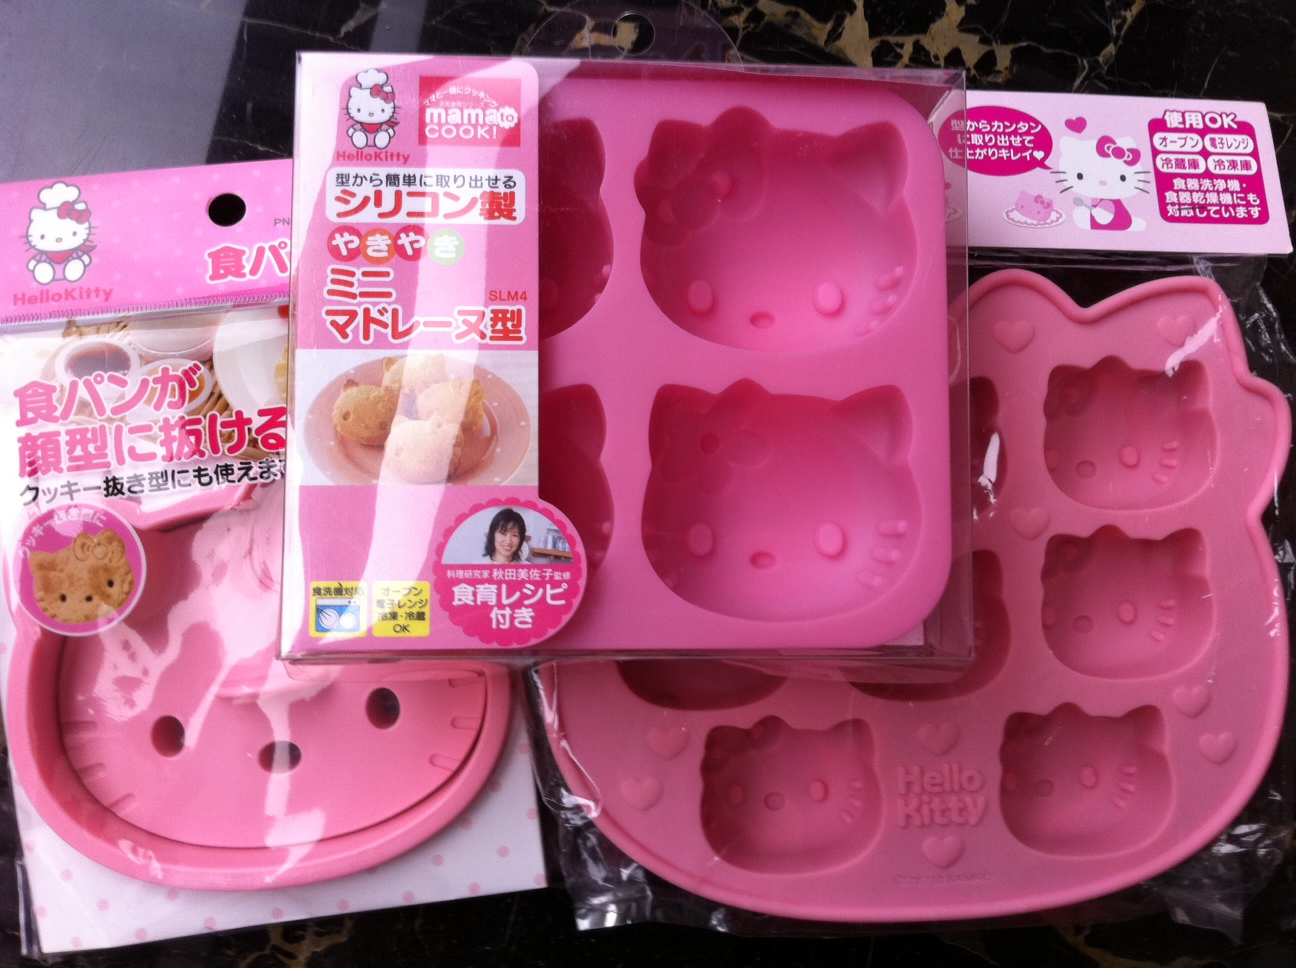 a hungry girl's guide to taipei: My kitchen: hello kitty